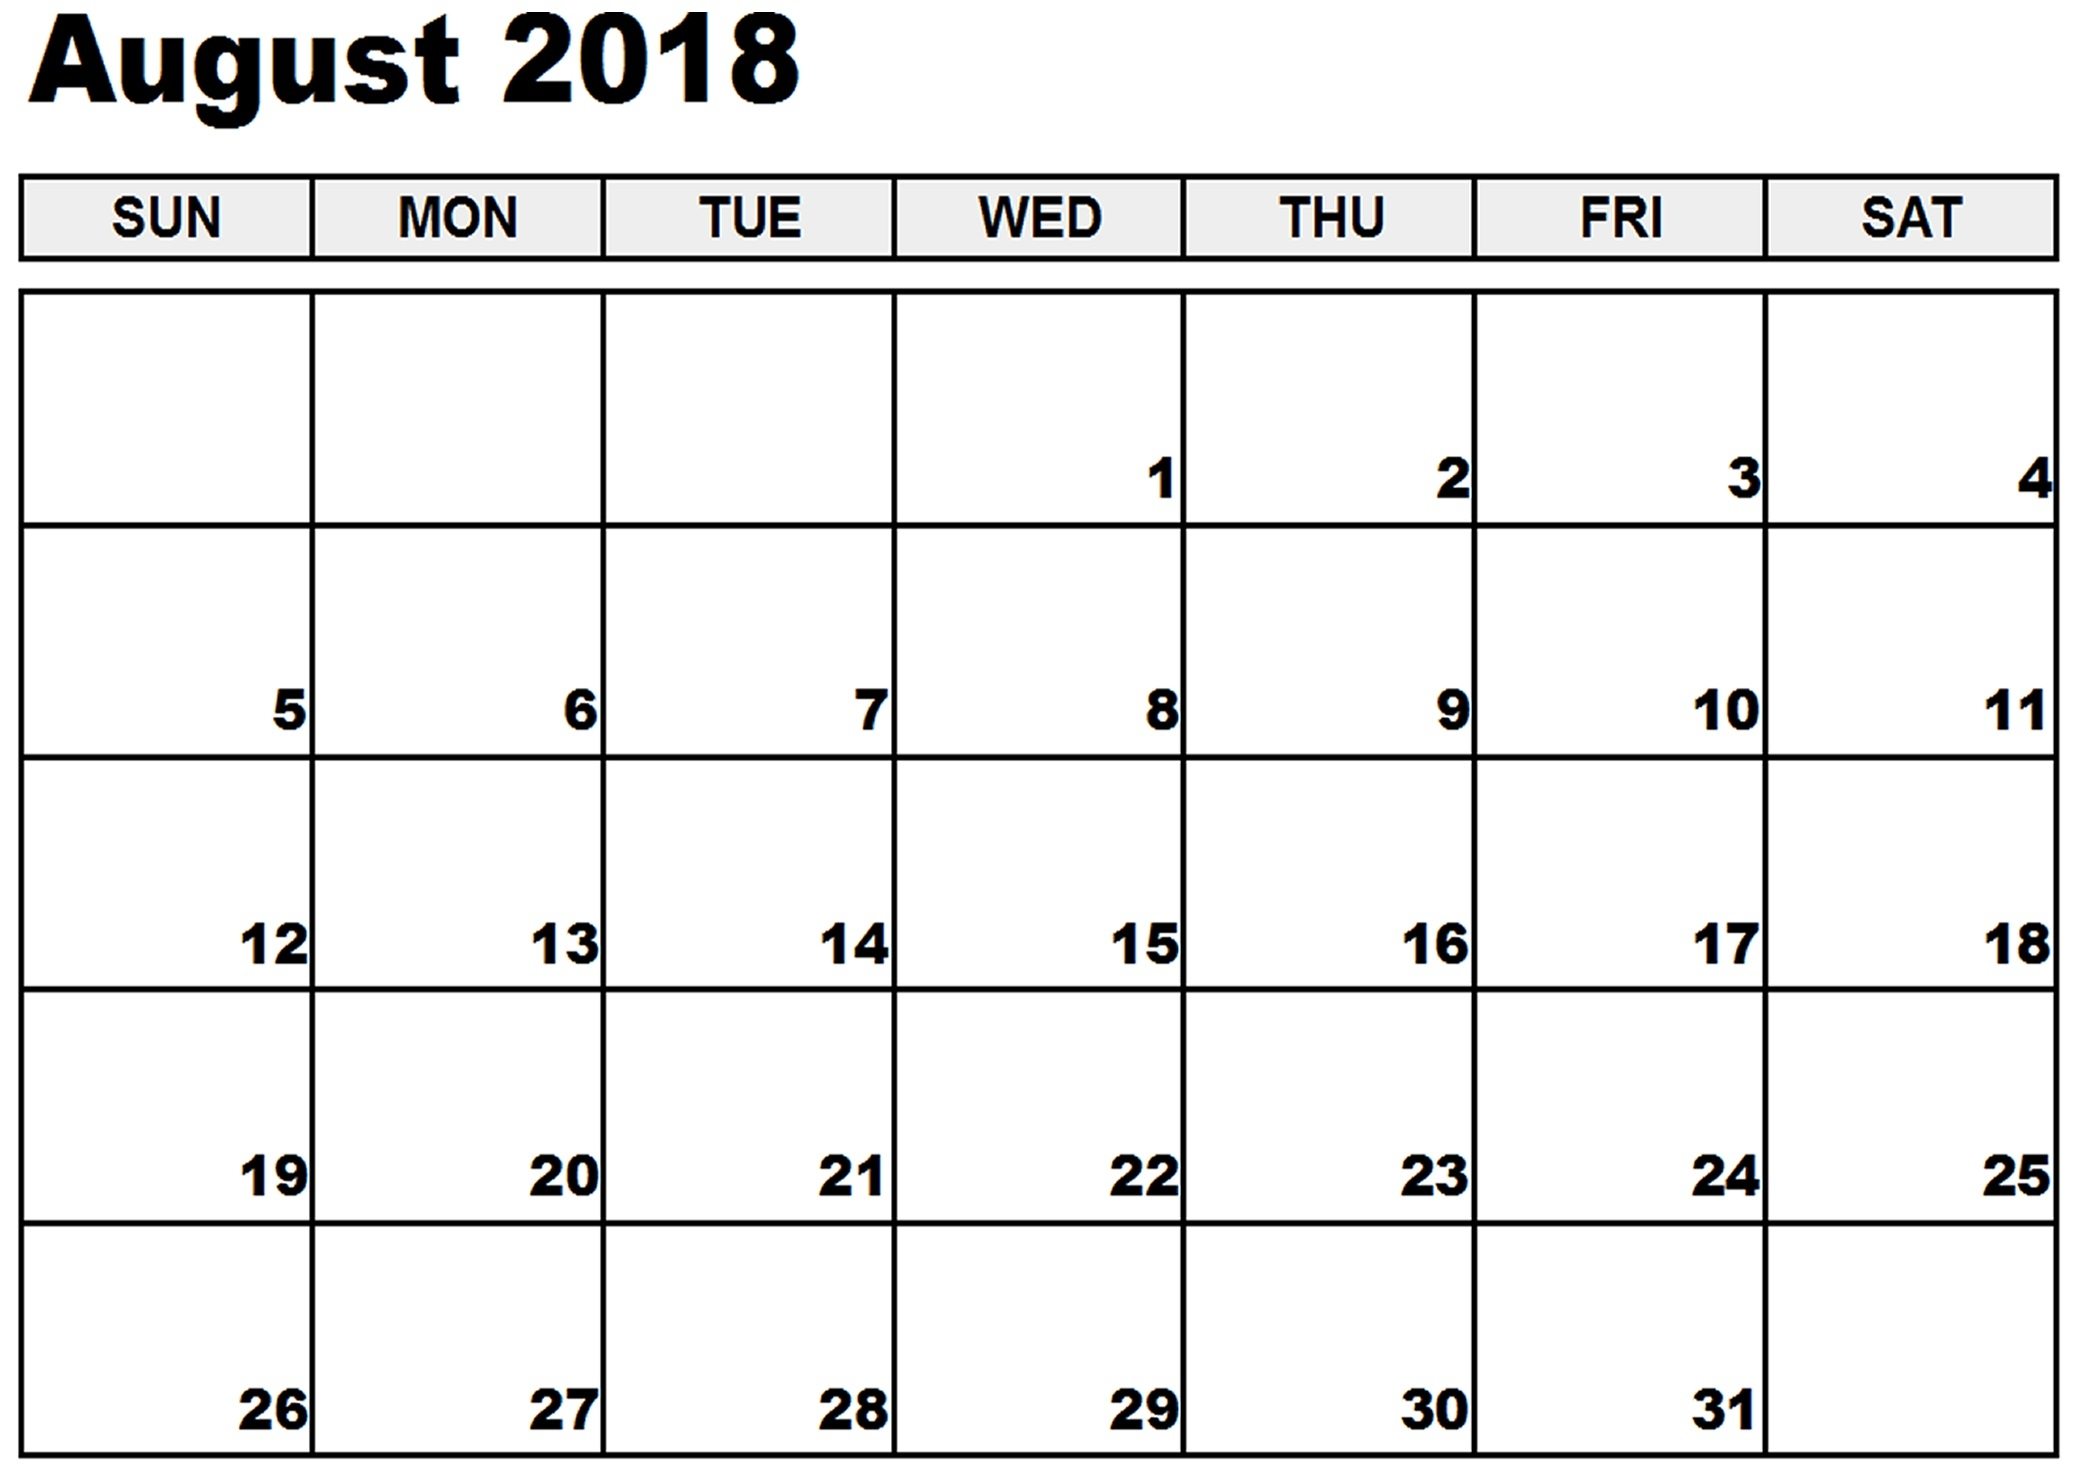 free download august calendar 2018 printable Free Pretty Printable Calendars August 2018 erdferdf